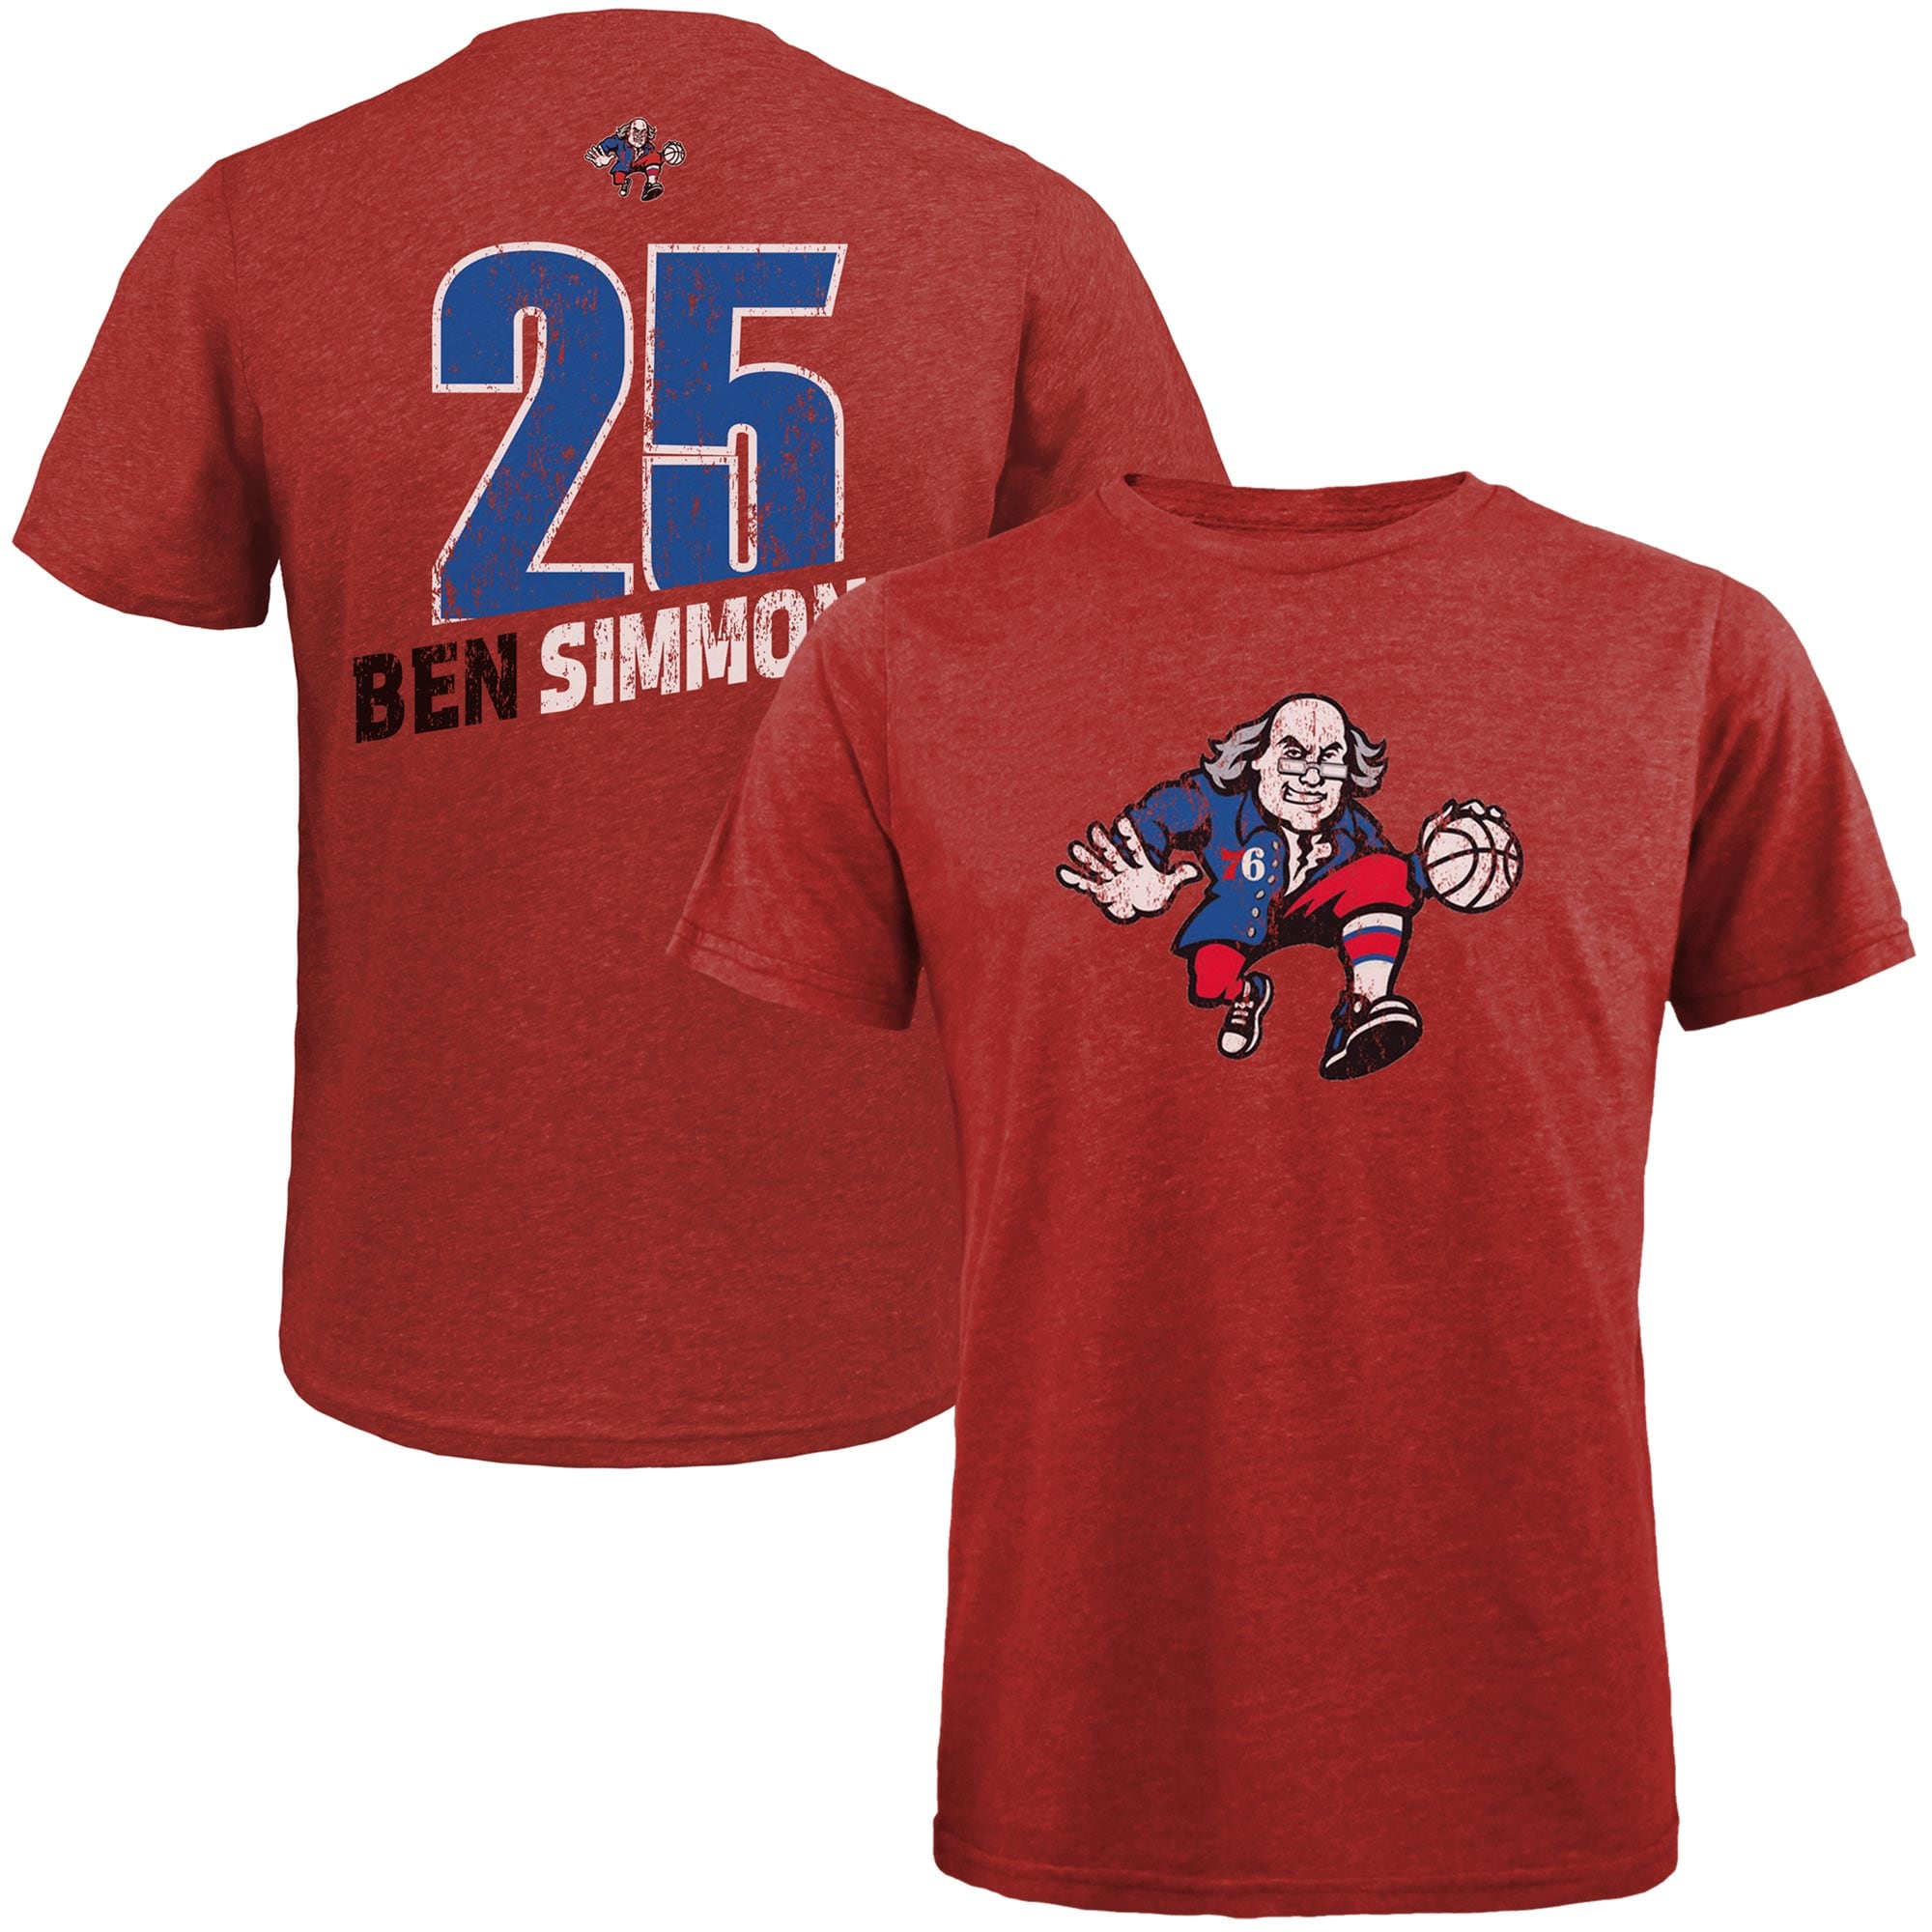 Ben Simmons Philadelphia 76ers Majestic Threads Name and Number Tri-Blend T-Shirt - Red